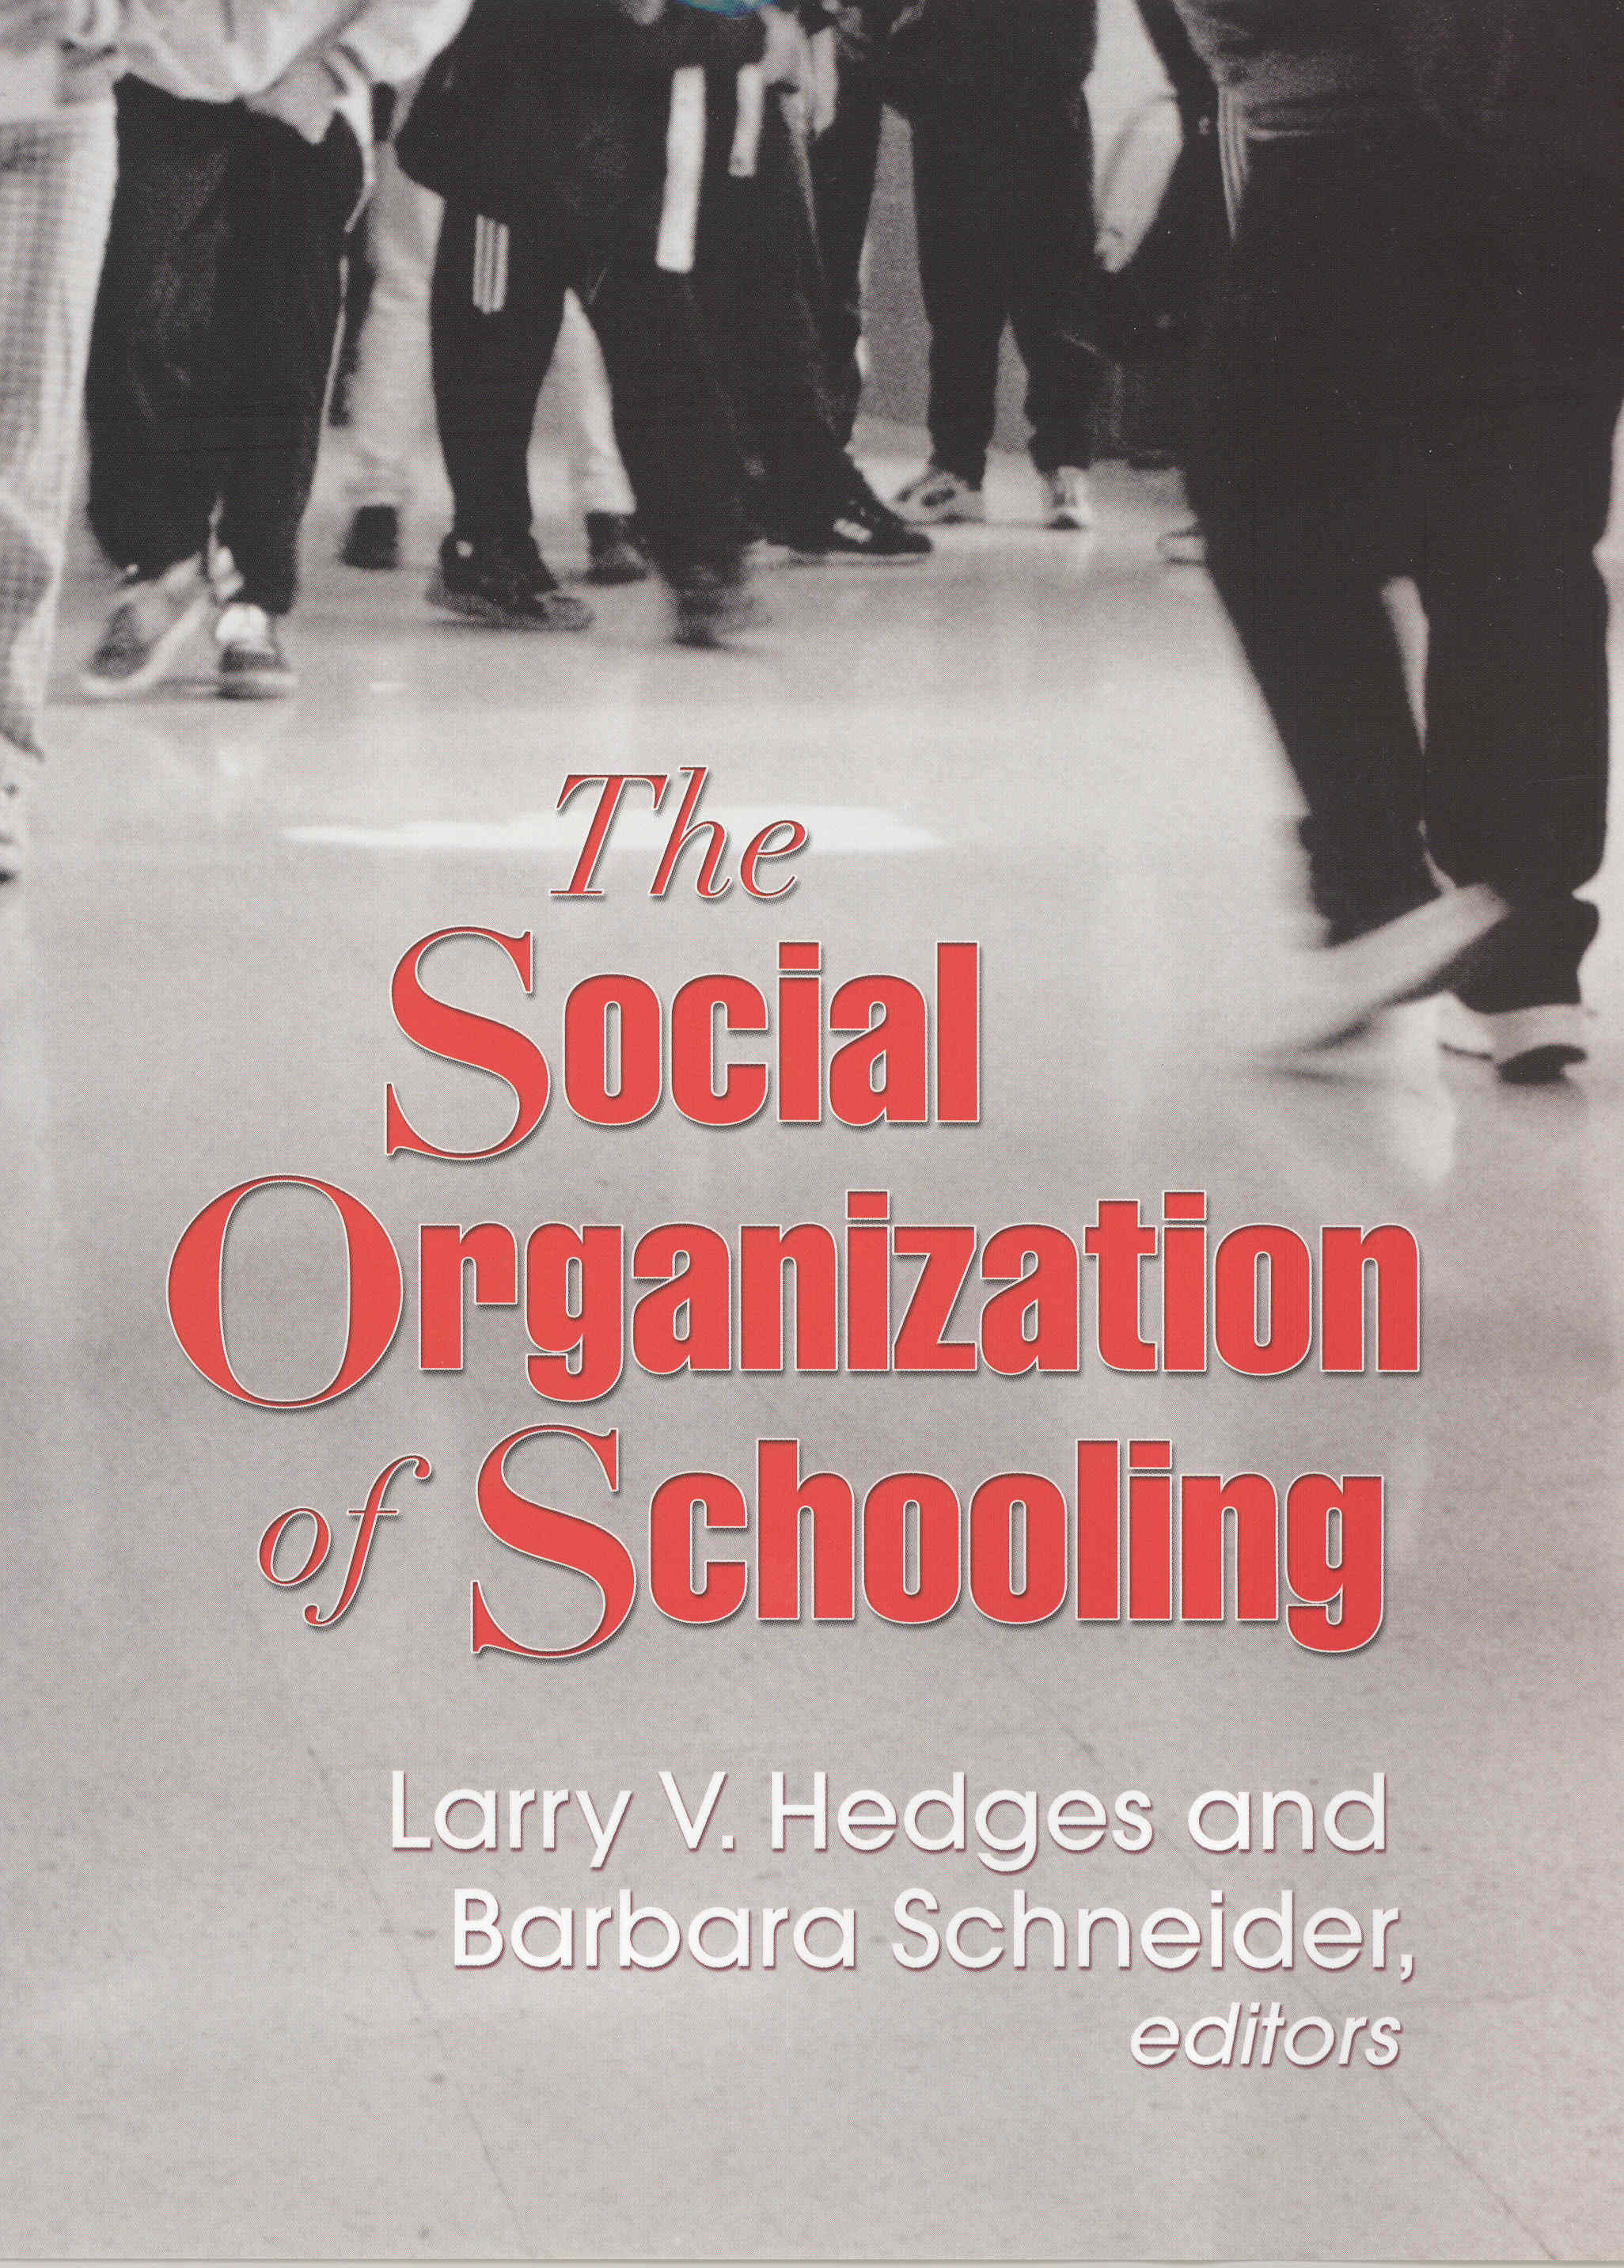 The Social Organization of Schooling | Russell Sage Foundation